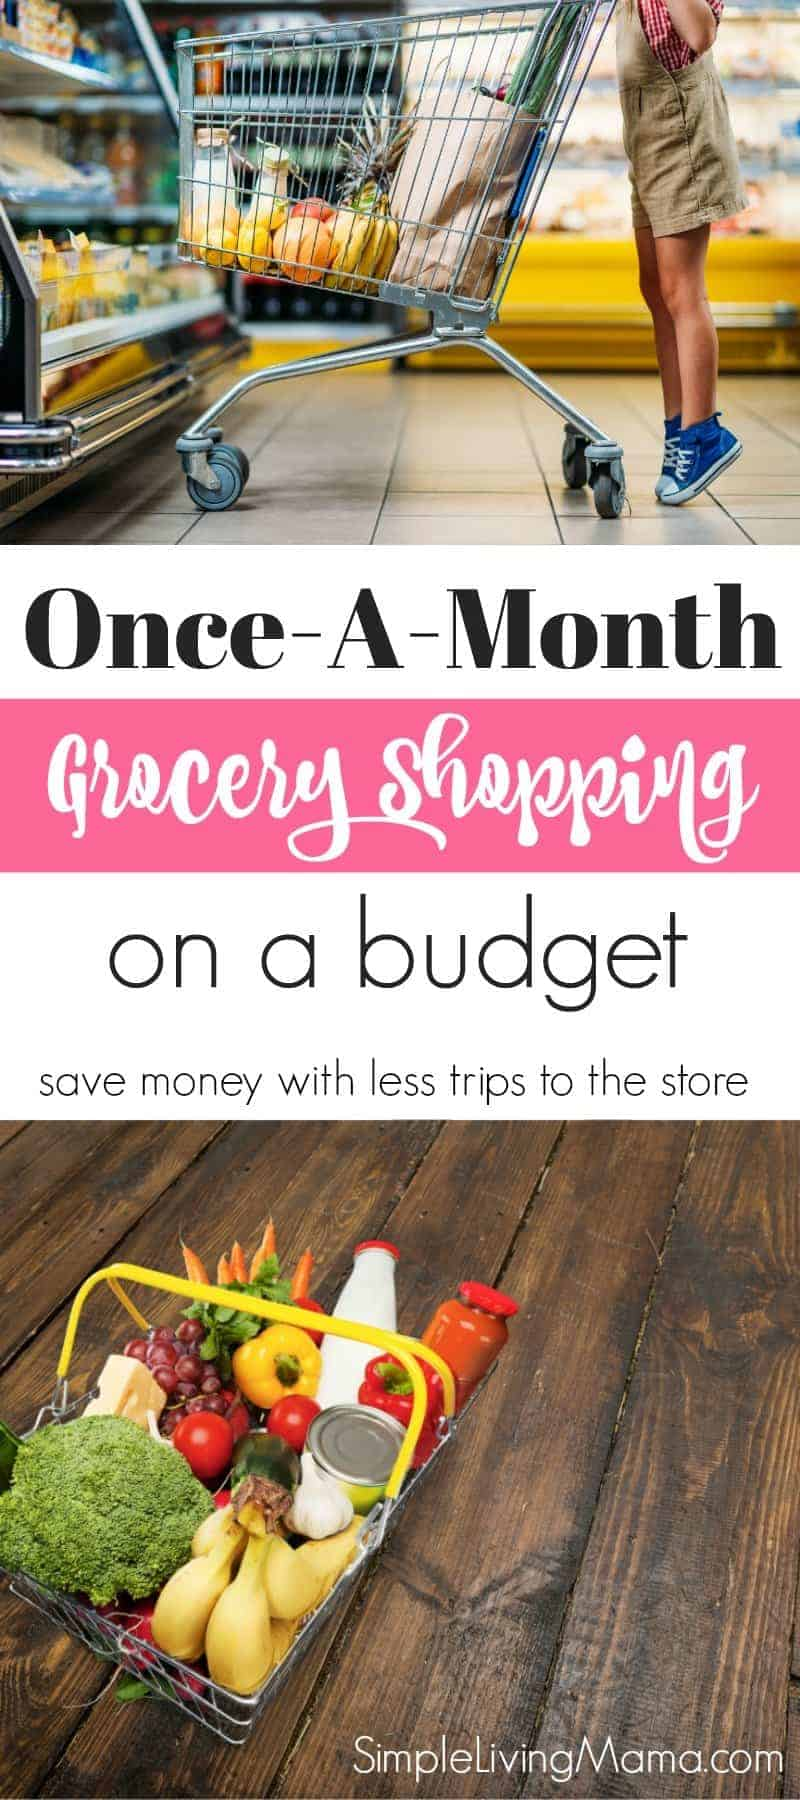 I know living 20 miles from the nearest grocery store doesn't necessarily require scaling back to once-a-month grocery trips but between the distance and our monthly budget strategy, it just evolved into what it is! First and foremost, I shop at Aldi. If you're not familiar, it's a grocery store .